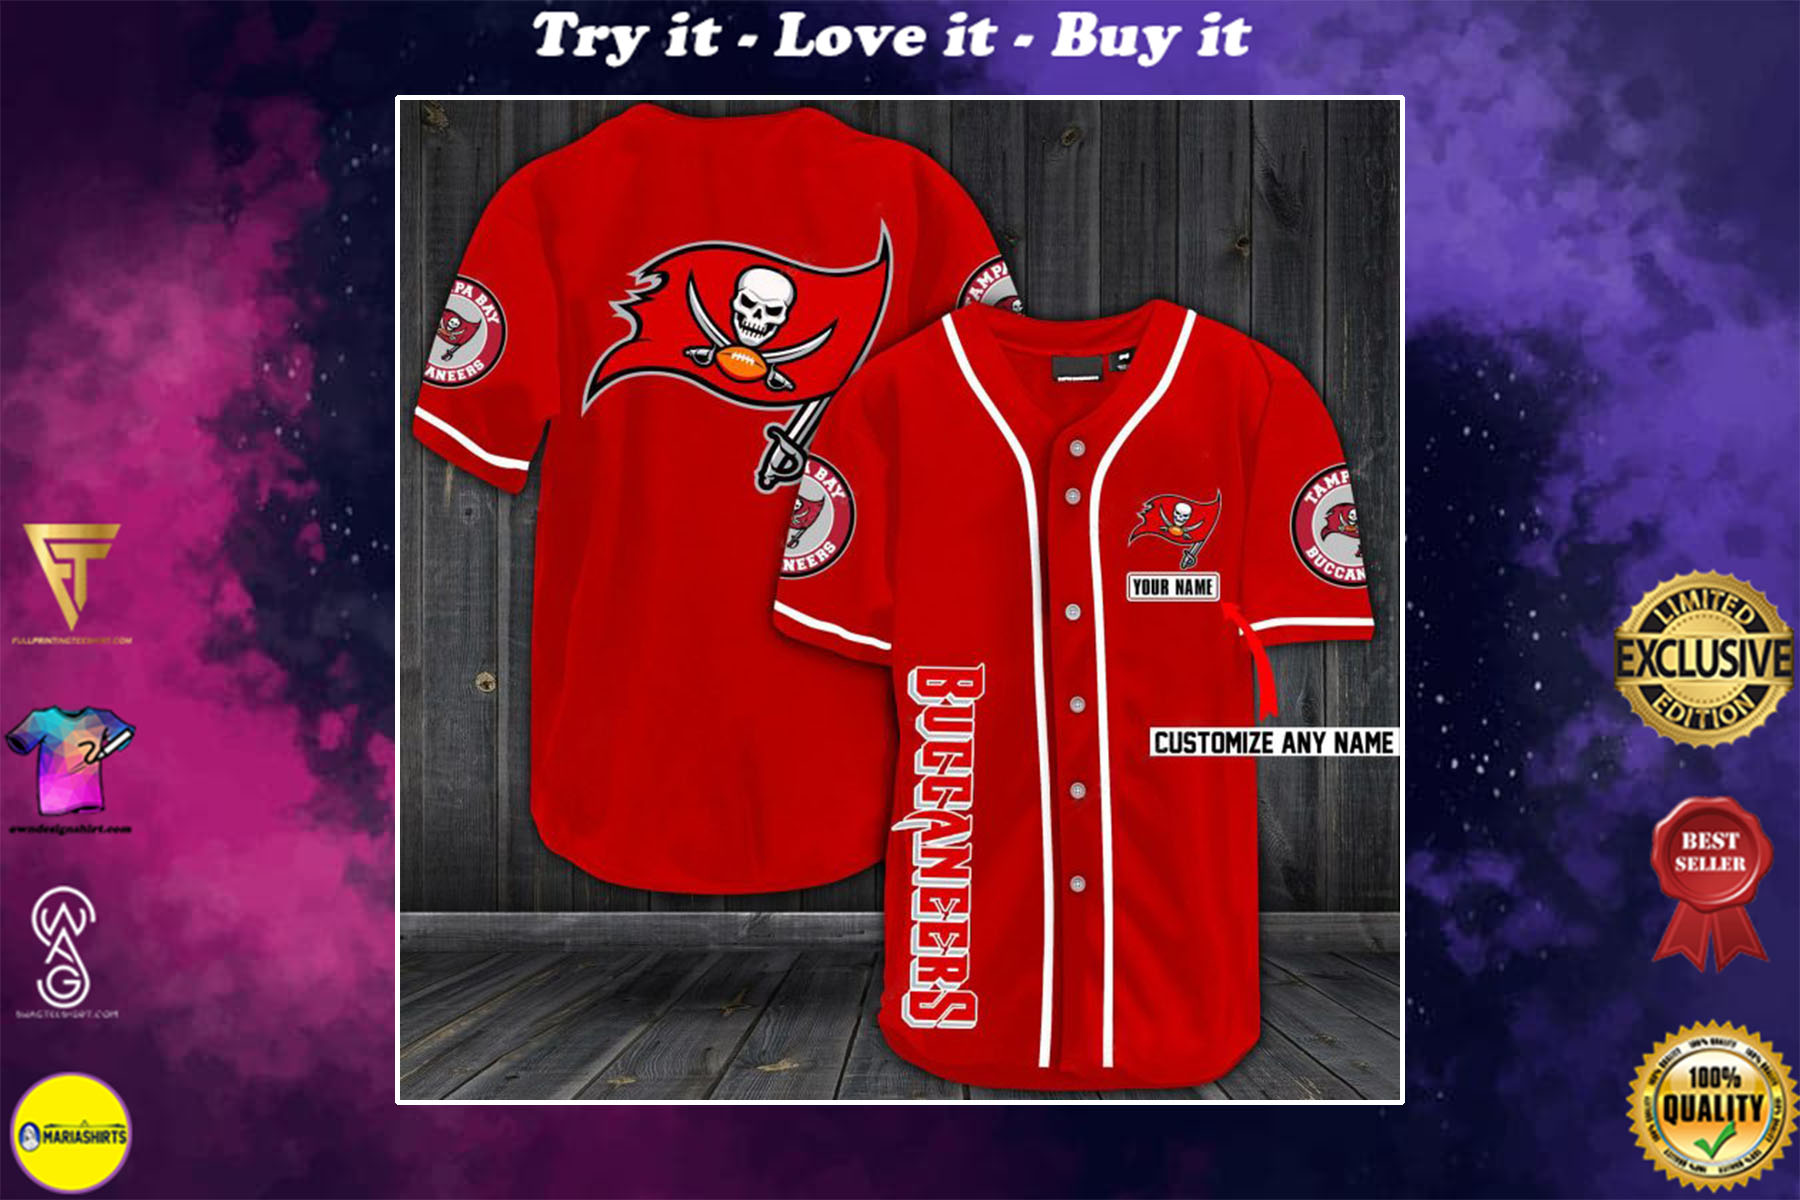 [special edition] personalized name jersey tampa bay buccaneers shirt - maria